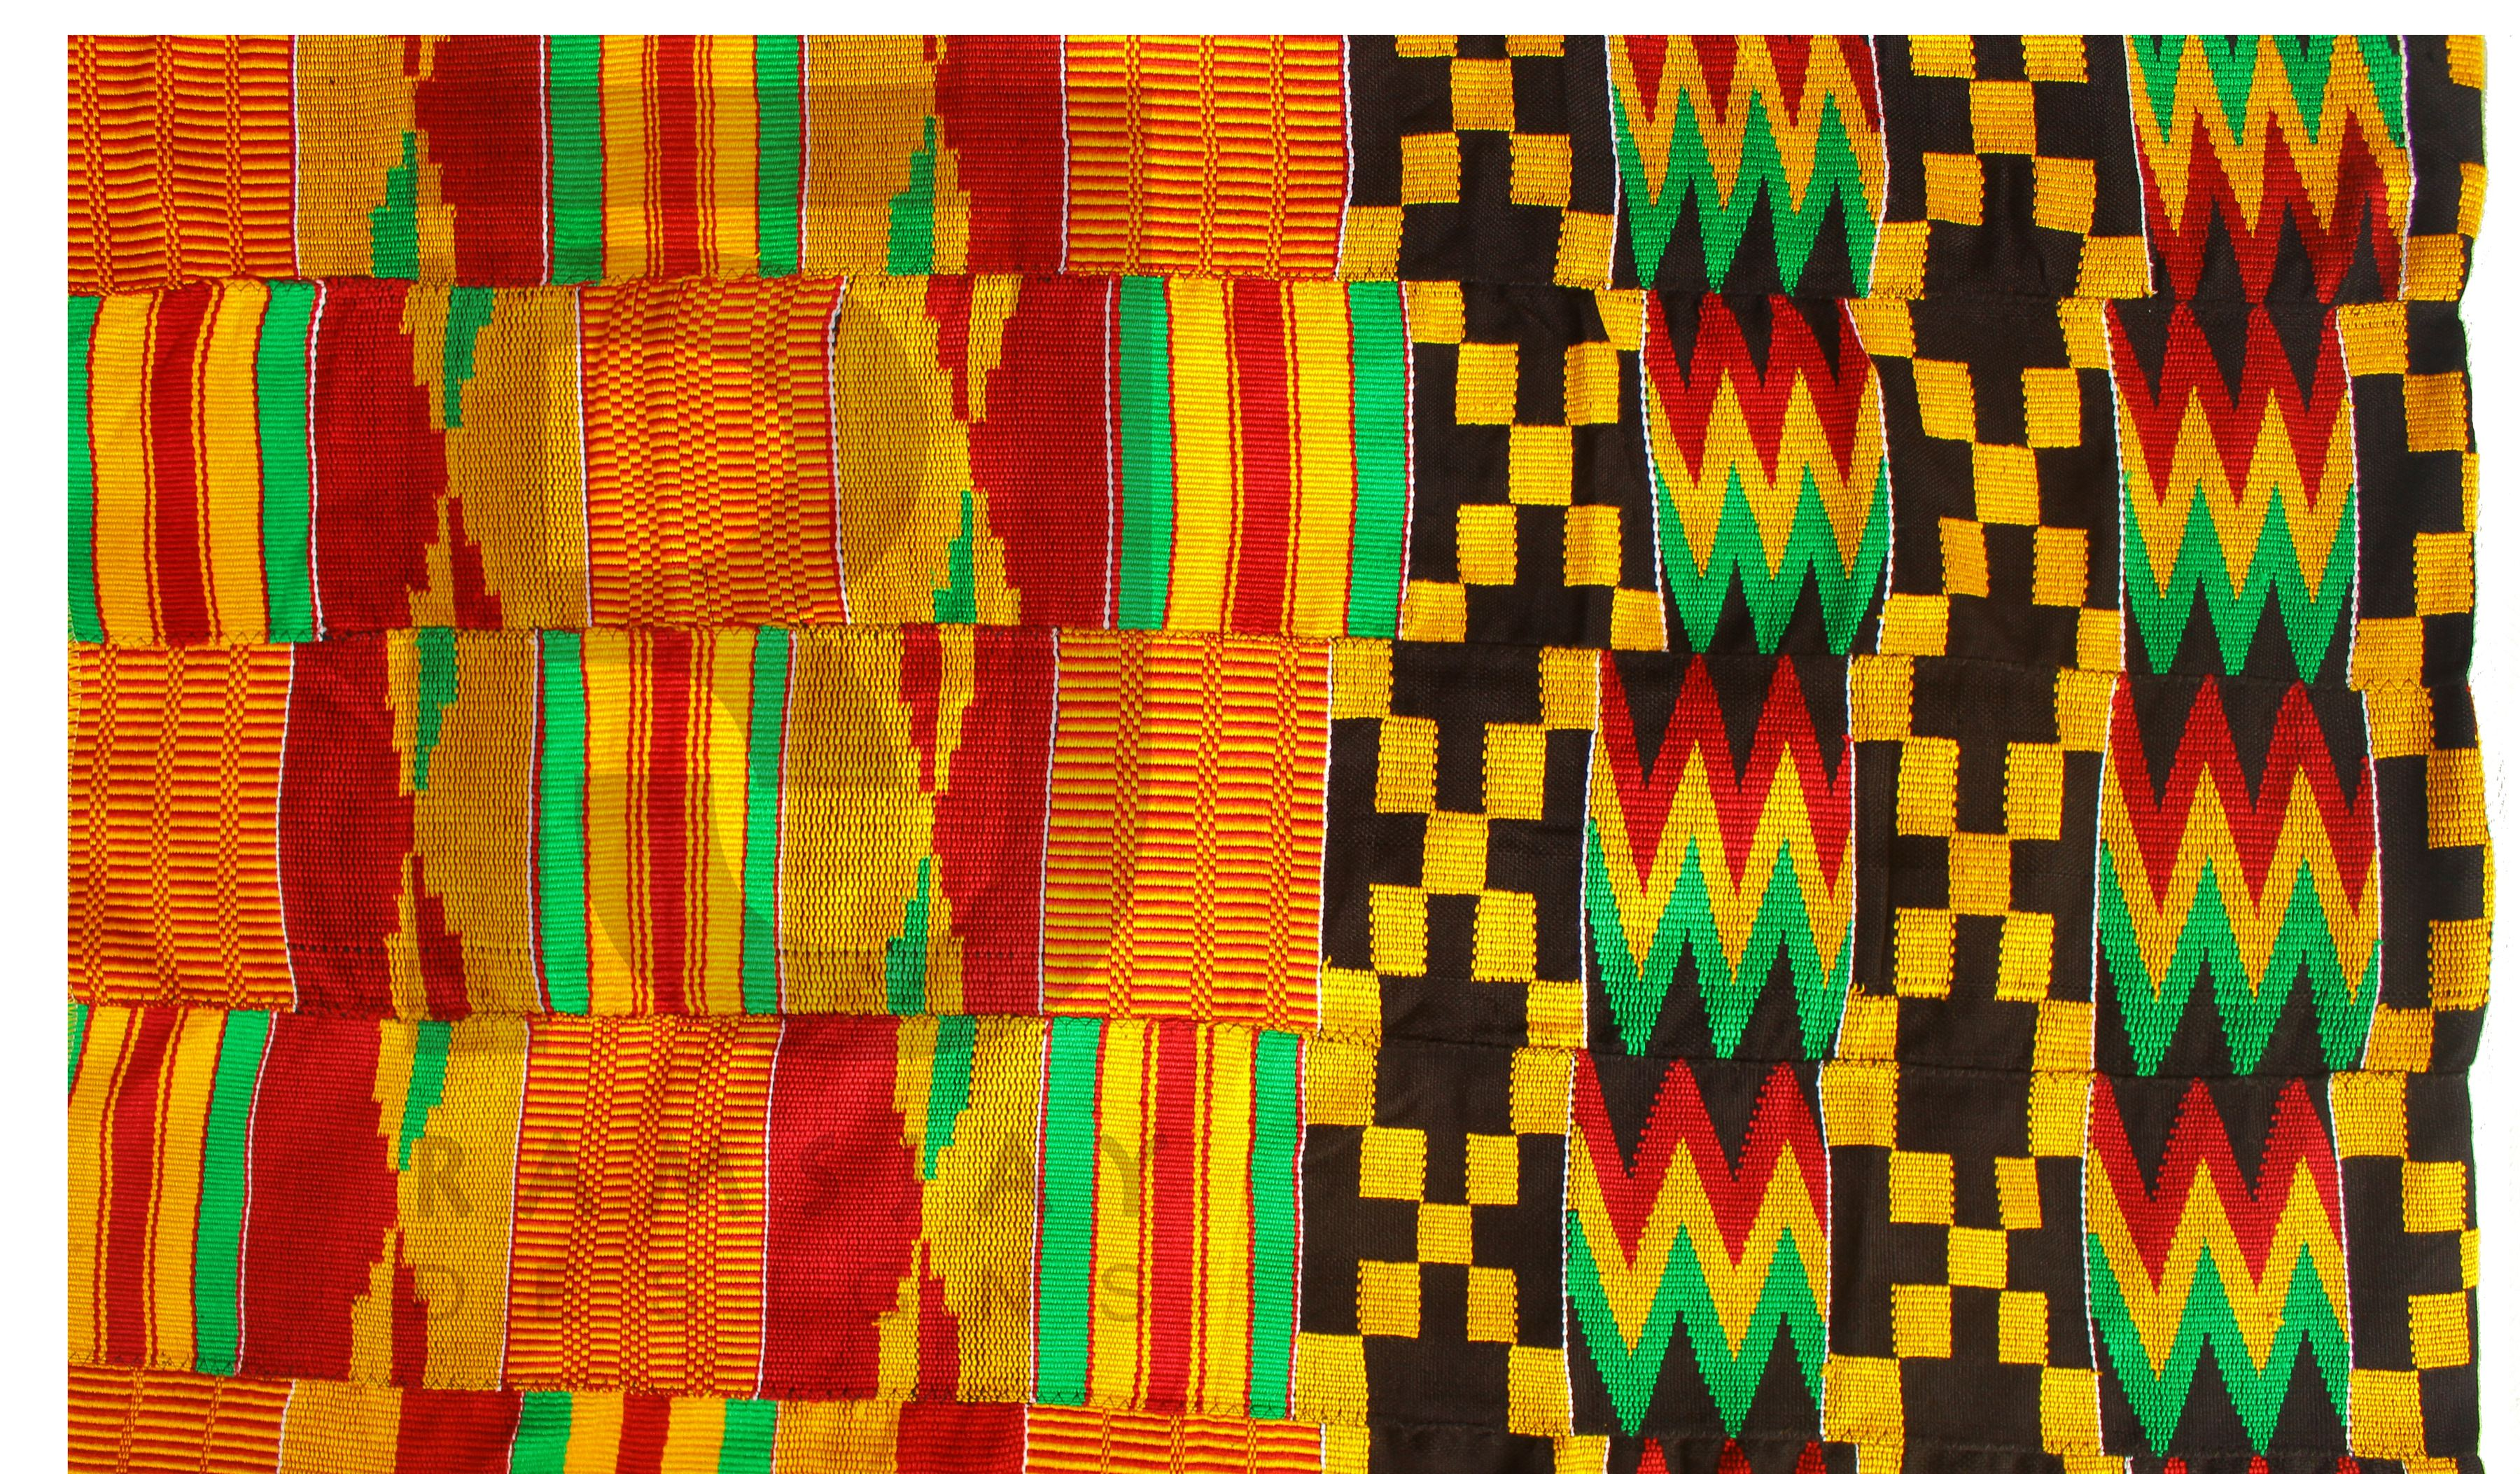 Kente Handwoven Cloth/Kente/Ashanti Kente/African fabric/Ghana Kente/6  yards from Ramsjay Designs